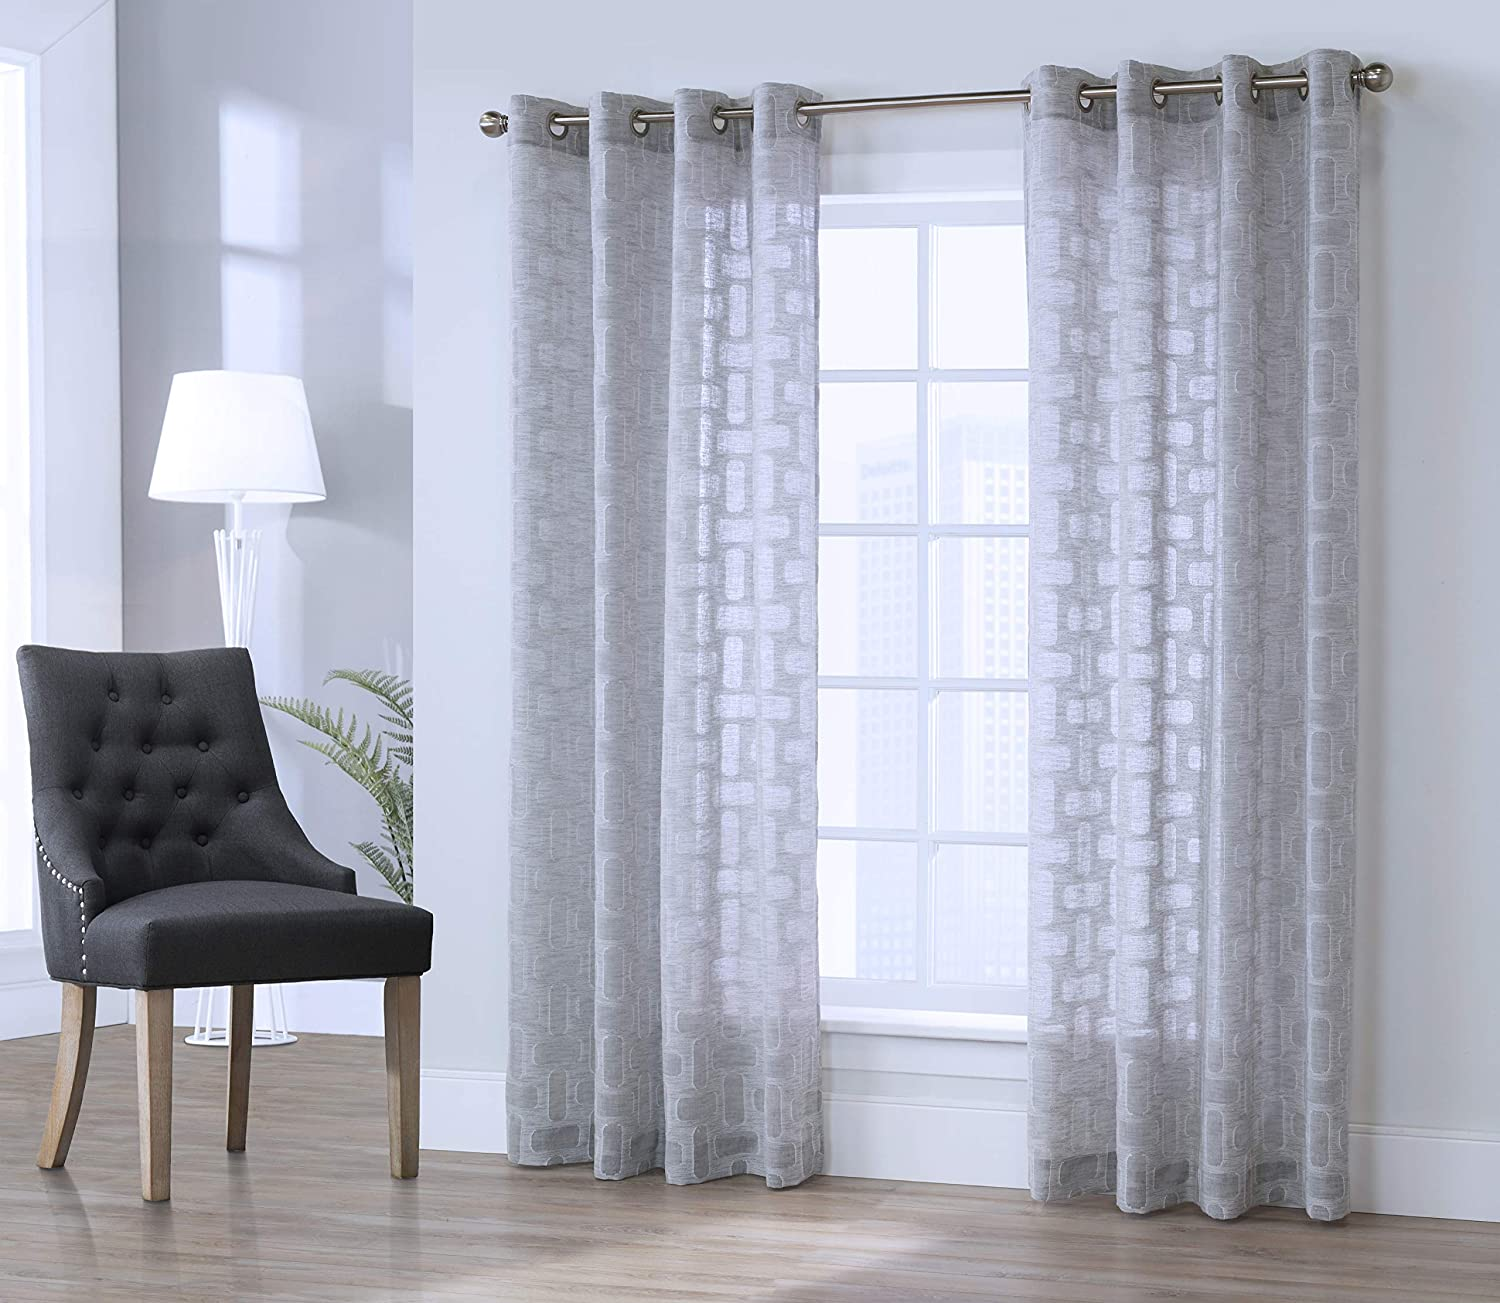 Commonwealth Home Fashions Voltaire, 84, Grey Window Curtain Panel, 50x84